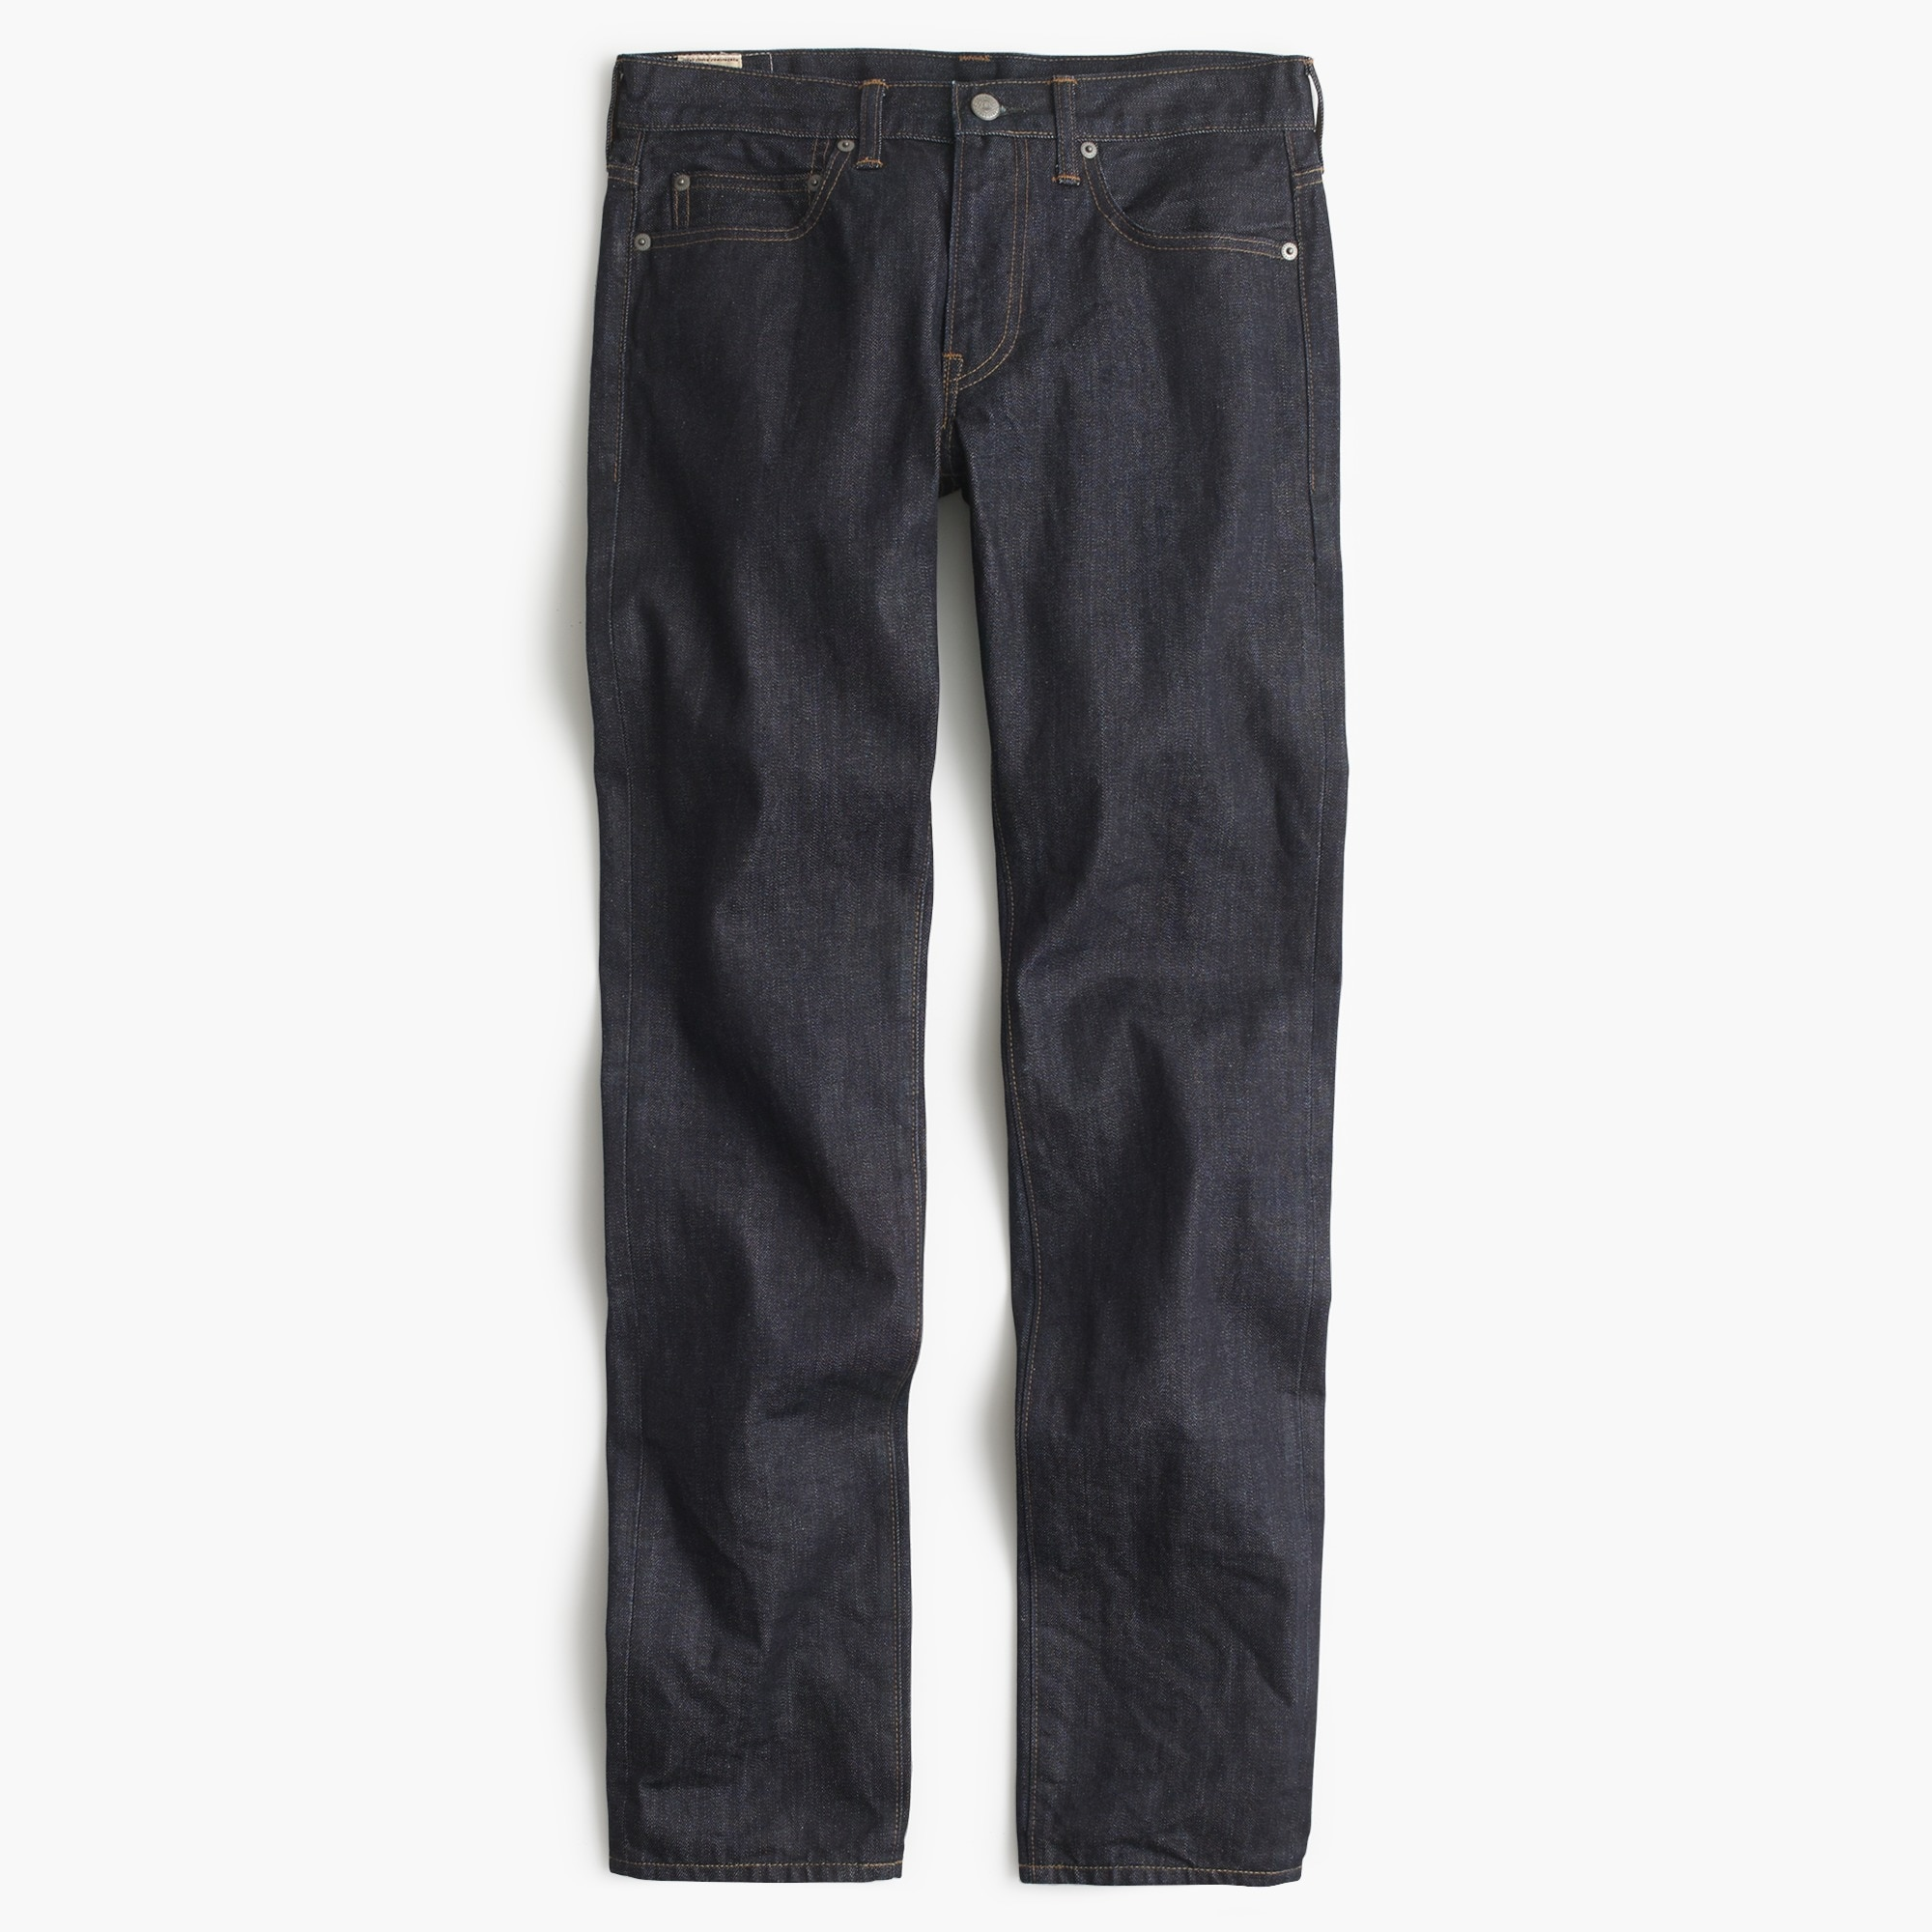 484 Slim-fit jean in Riverton wash